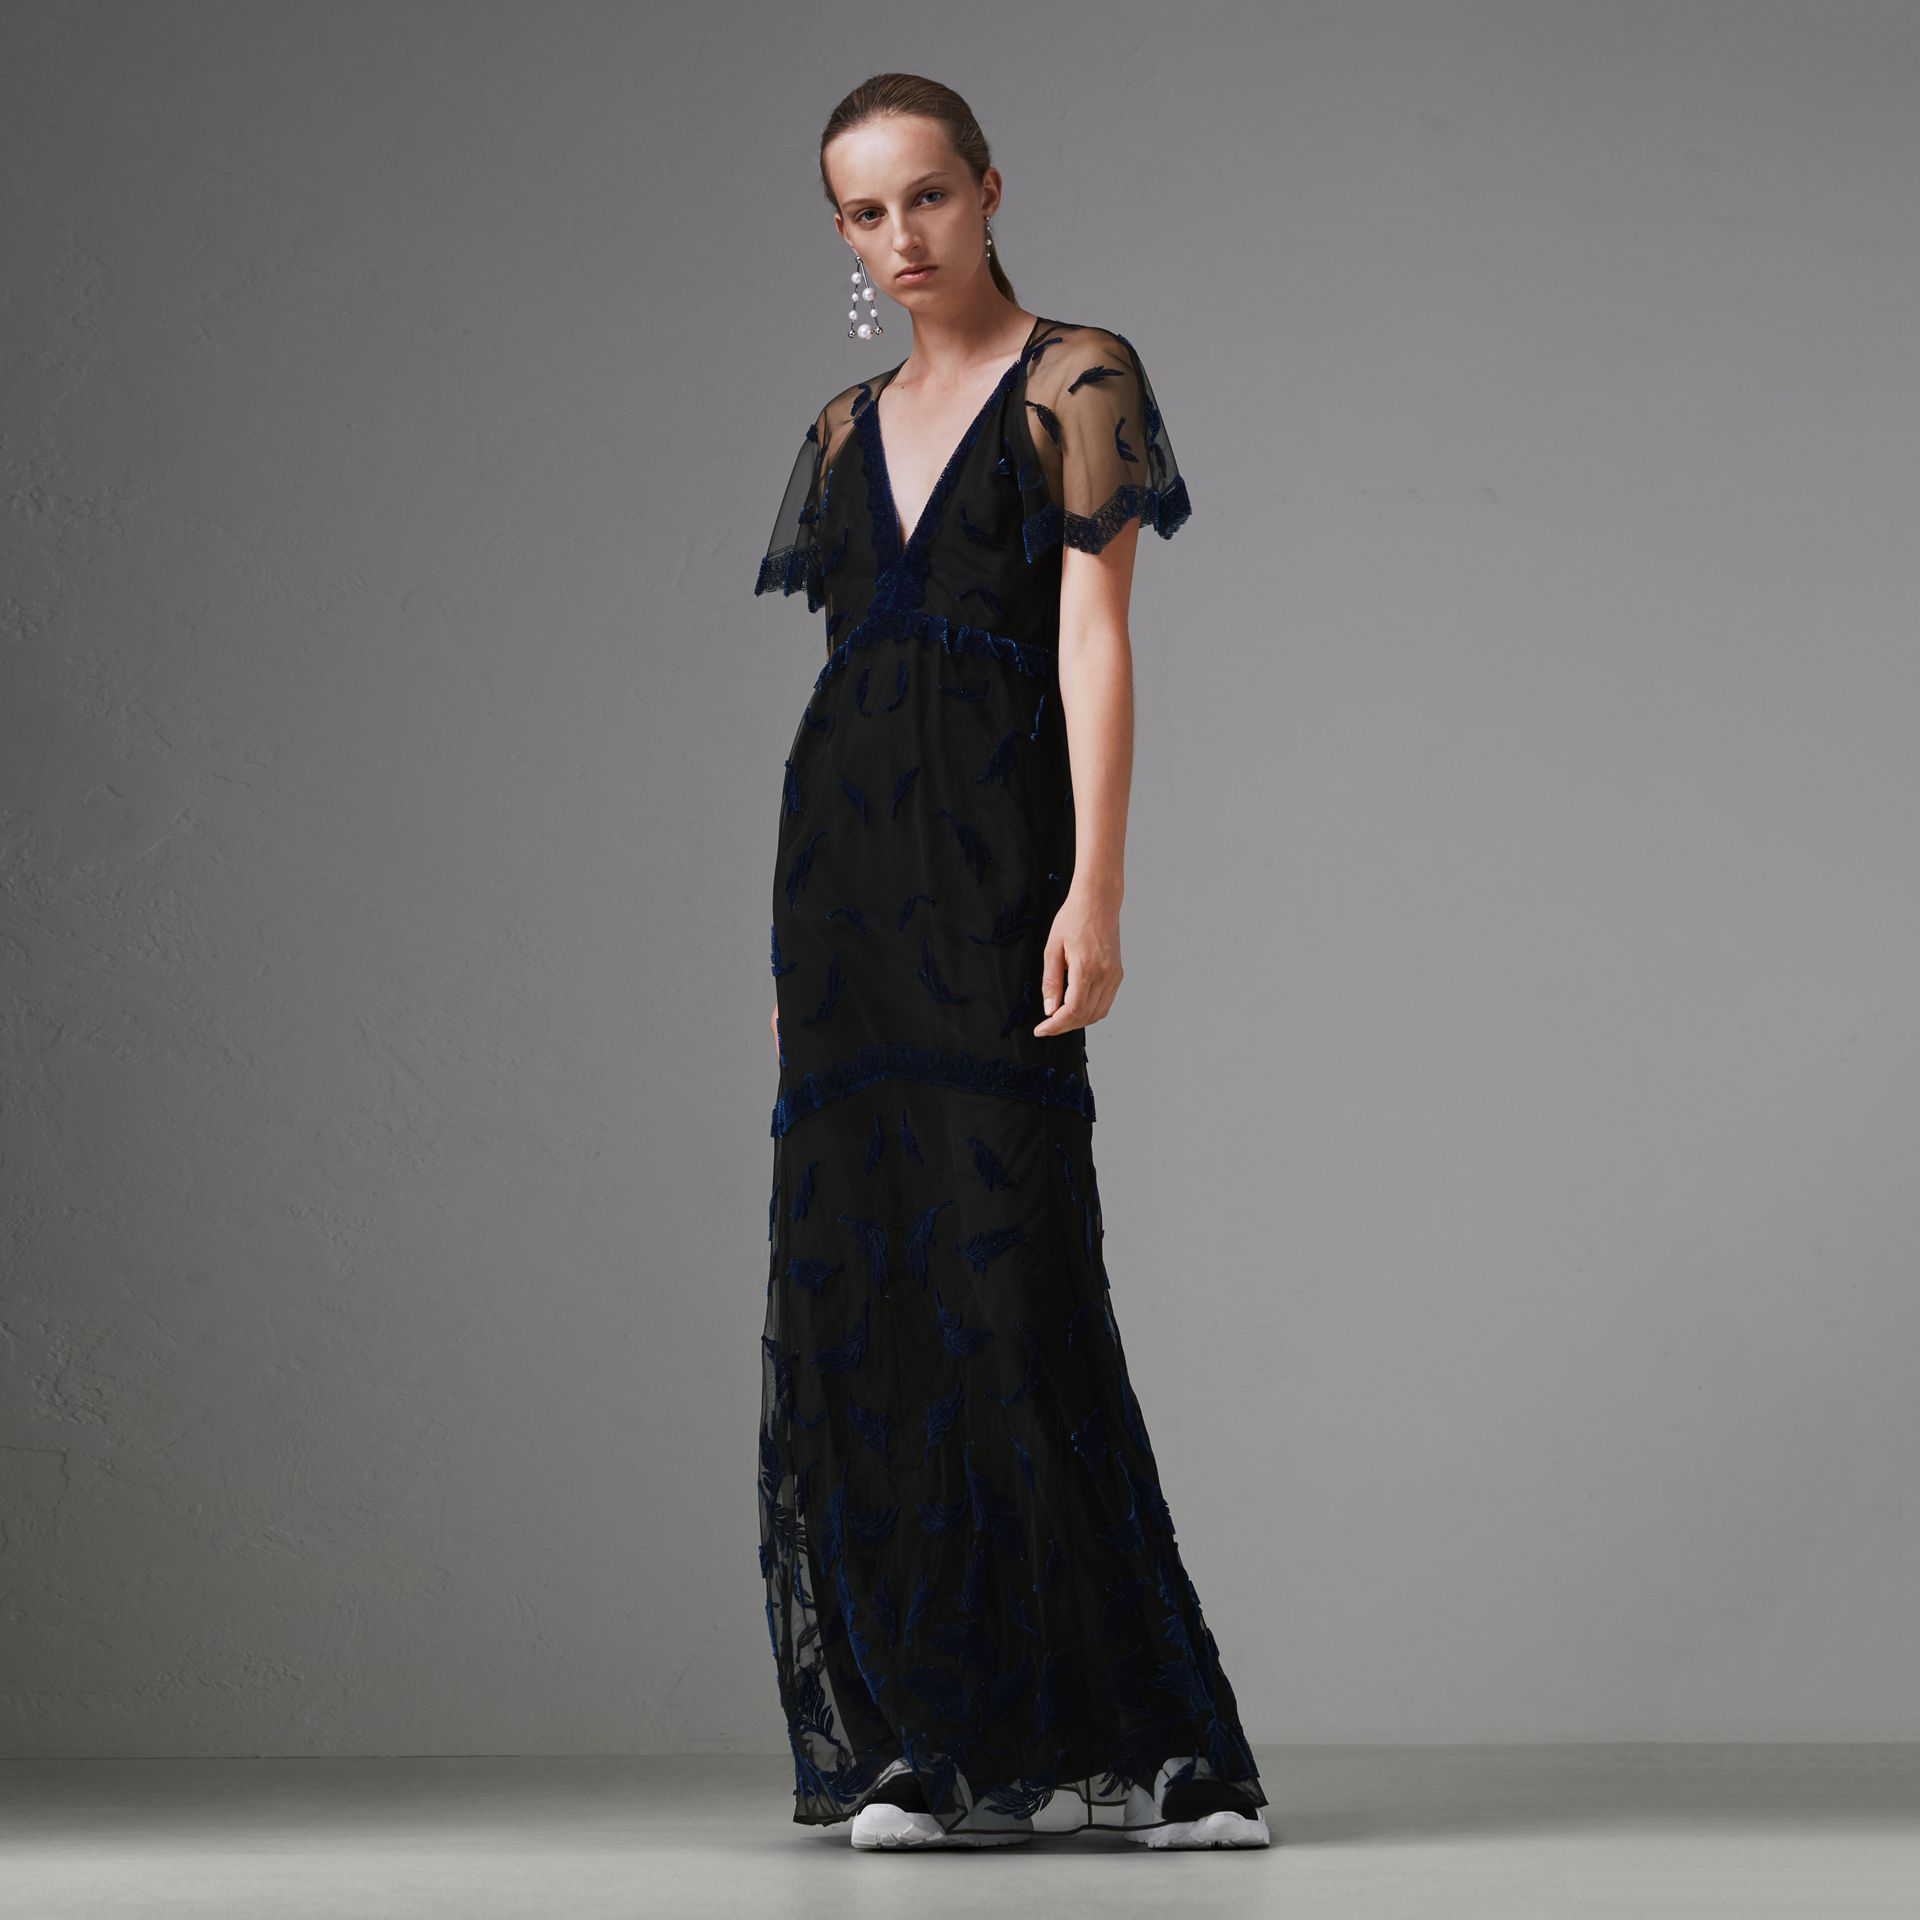 Velvet Leaf Cap-sleeve Gown in Black/blue - Women | Burberry - gallery image 4